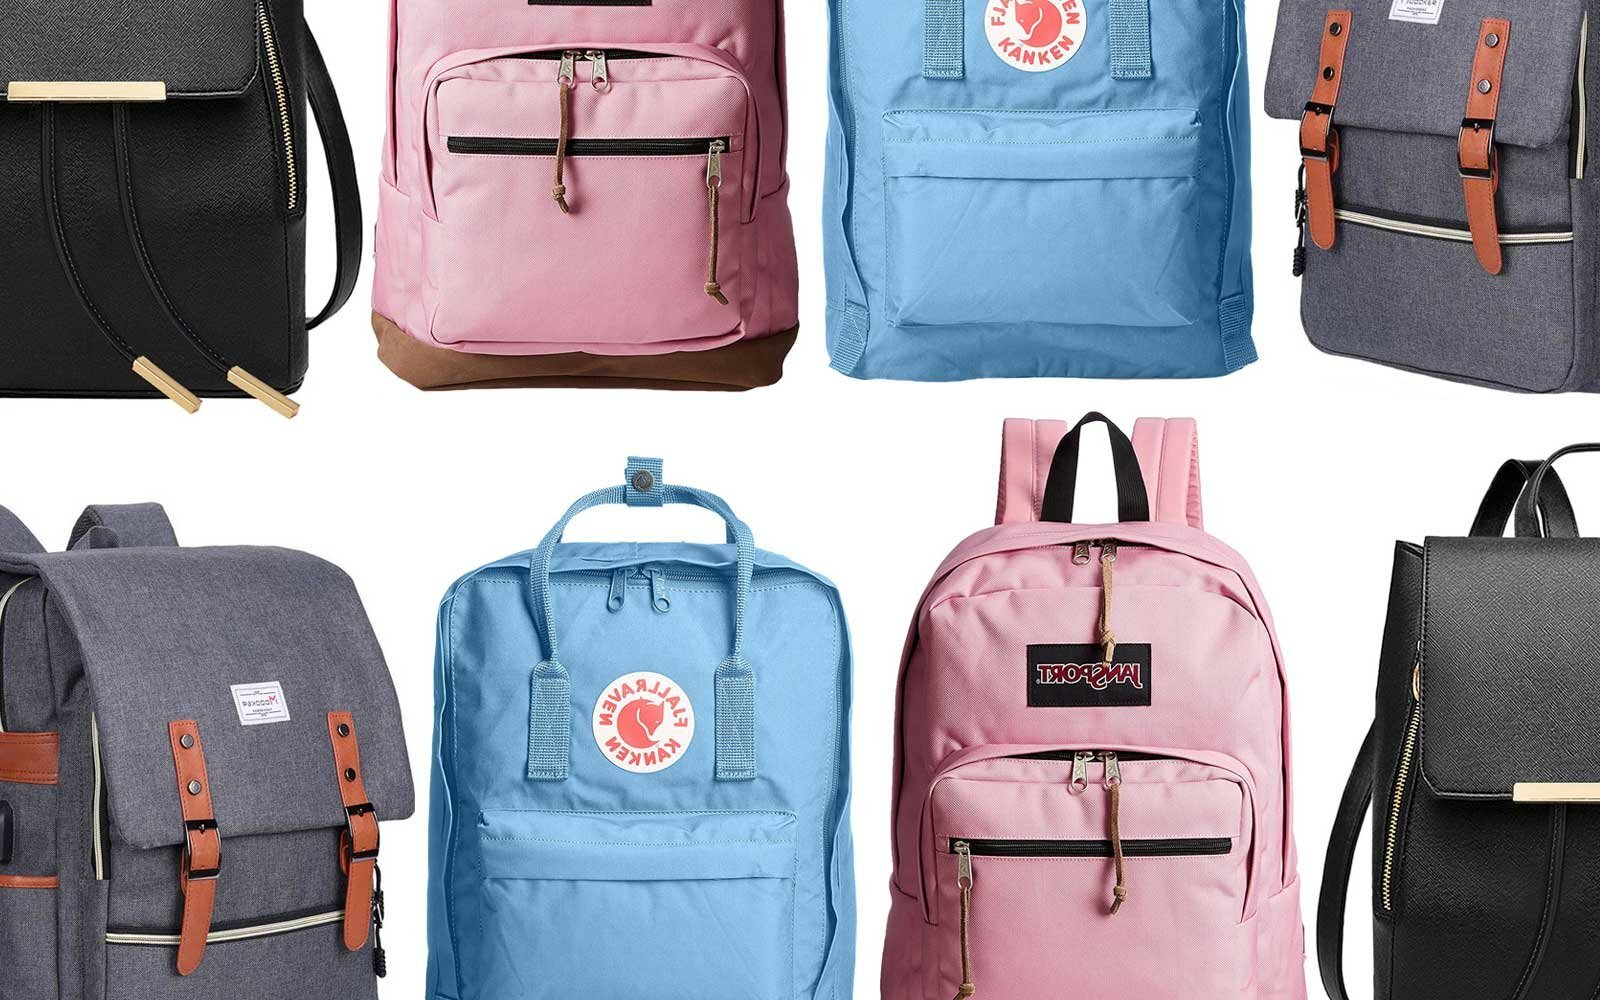 fdcaa382ed backpacks-BSBACKPACKS0218.jpg. Courtesy of Amazon